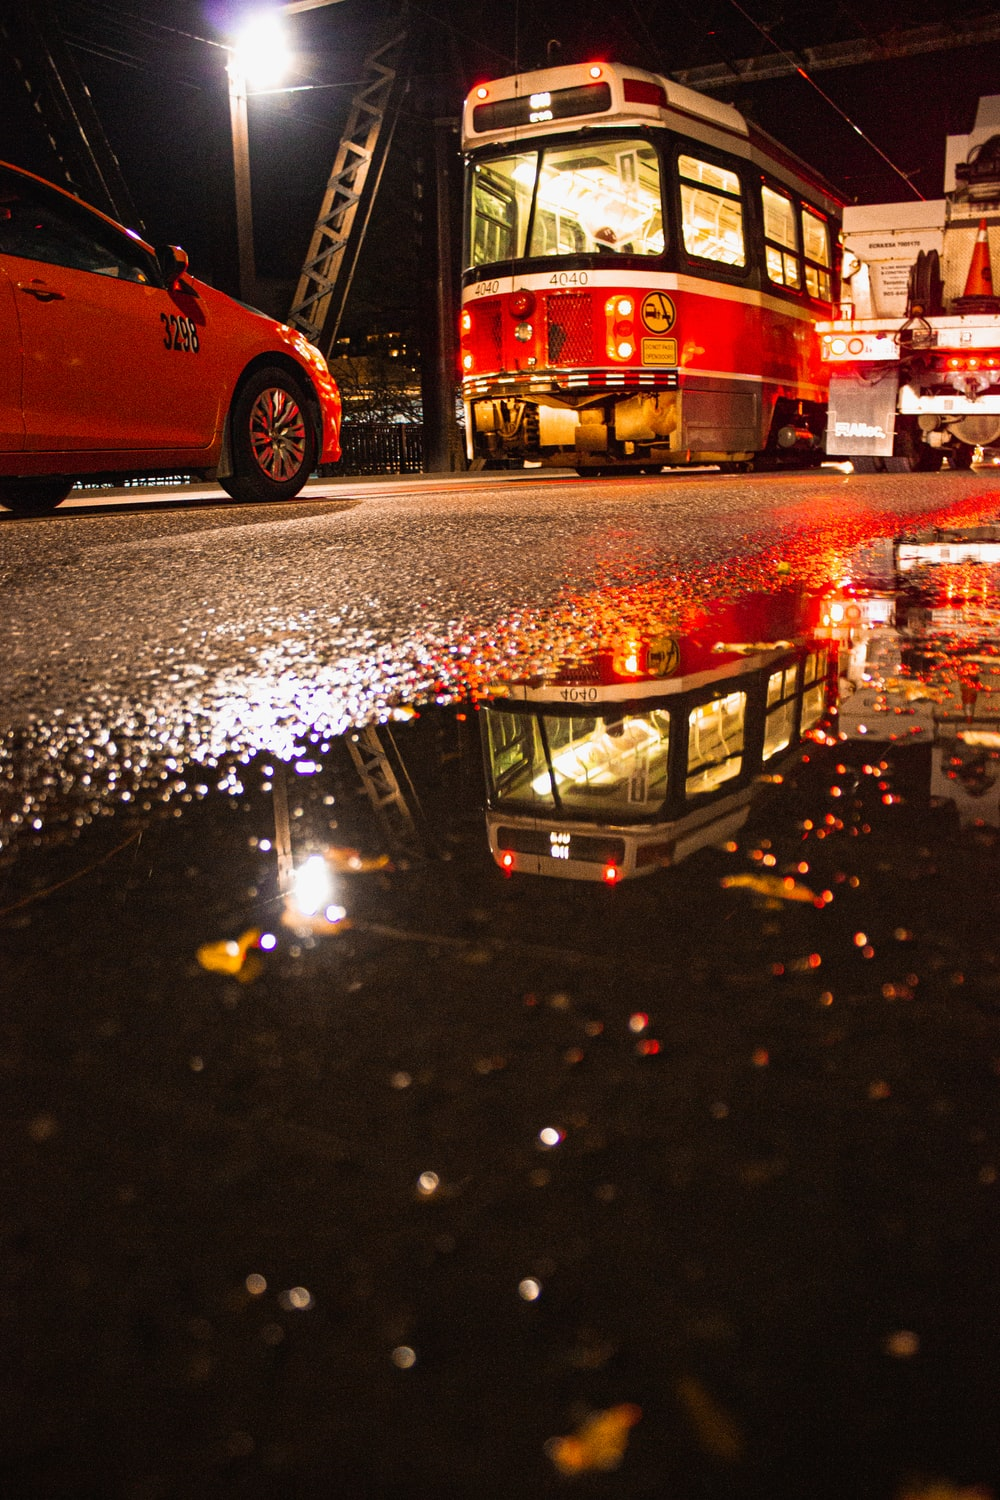 red vehicle passing near water puddle on road at night